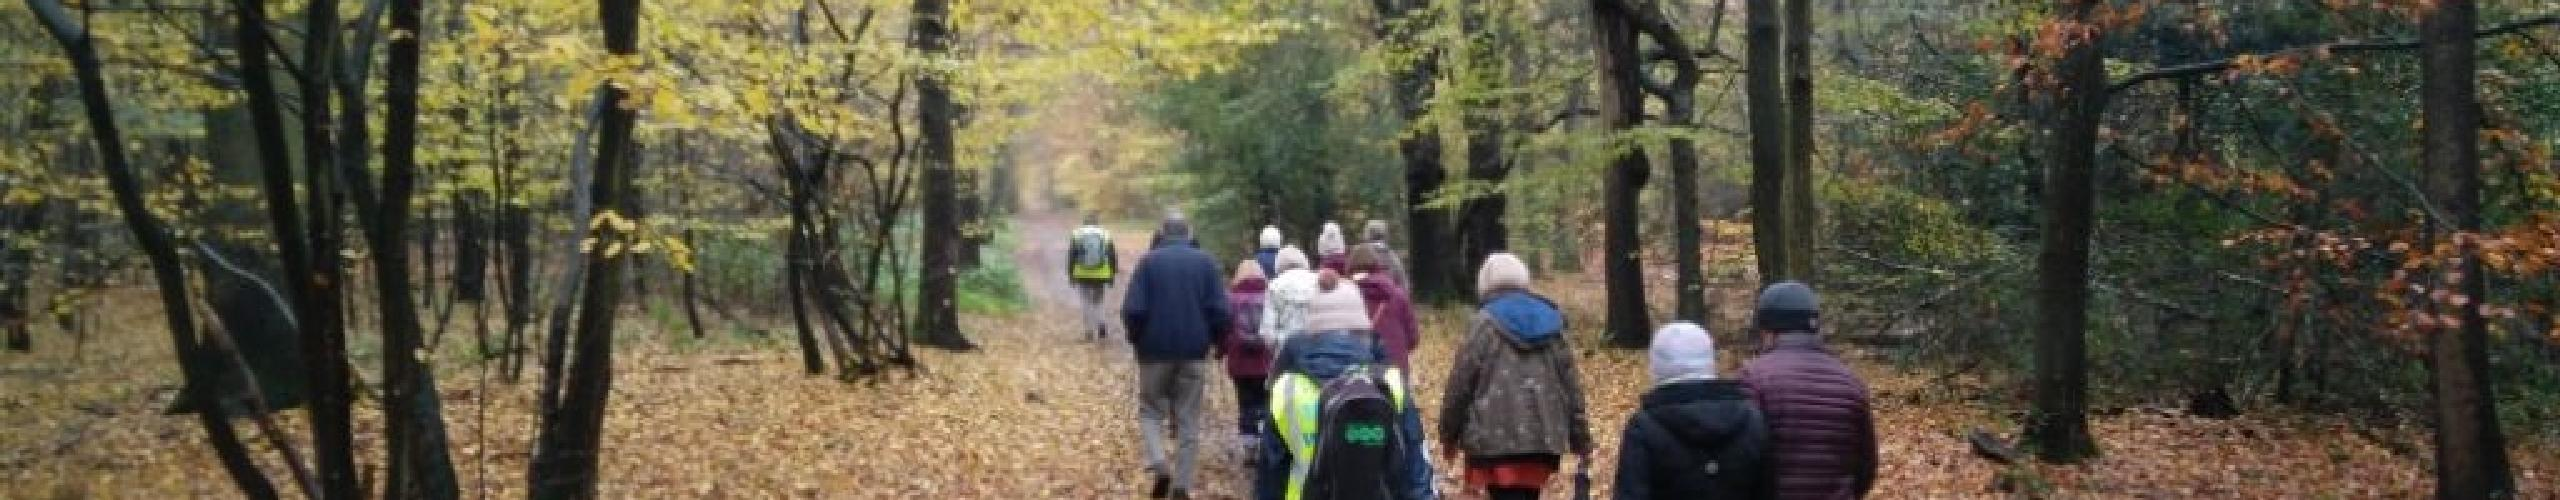 An image of a Health Walk taking place in Welwyn Garden City.